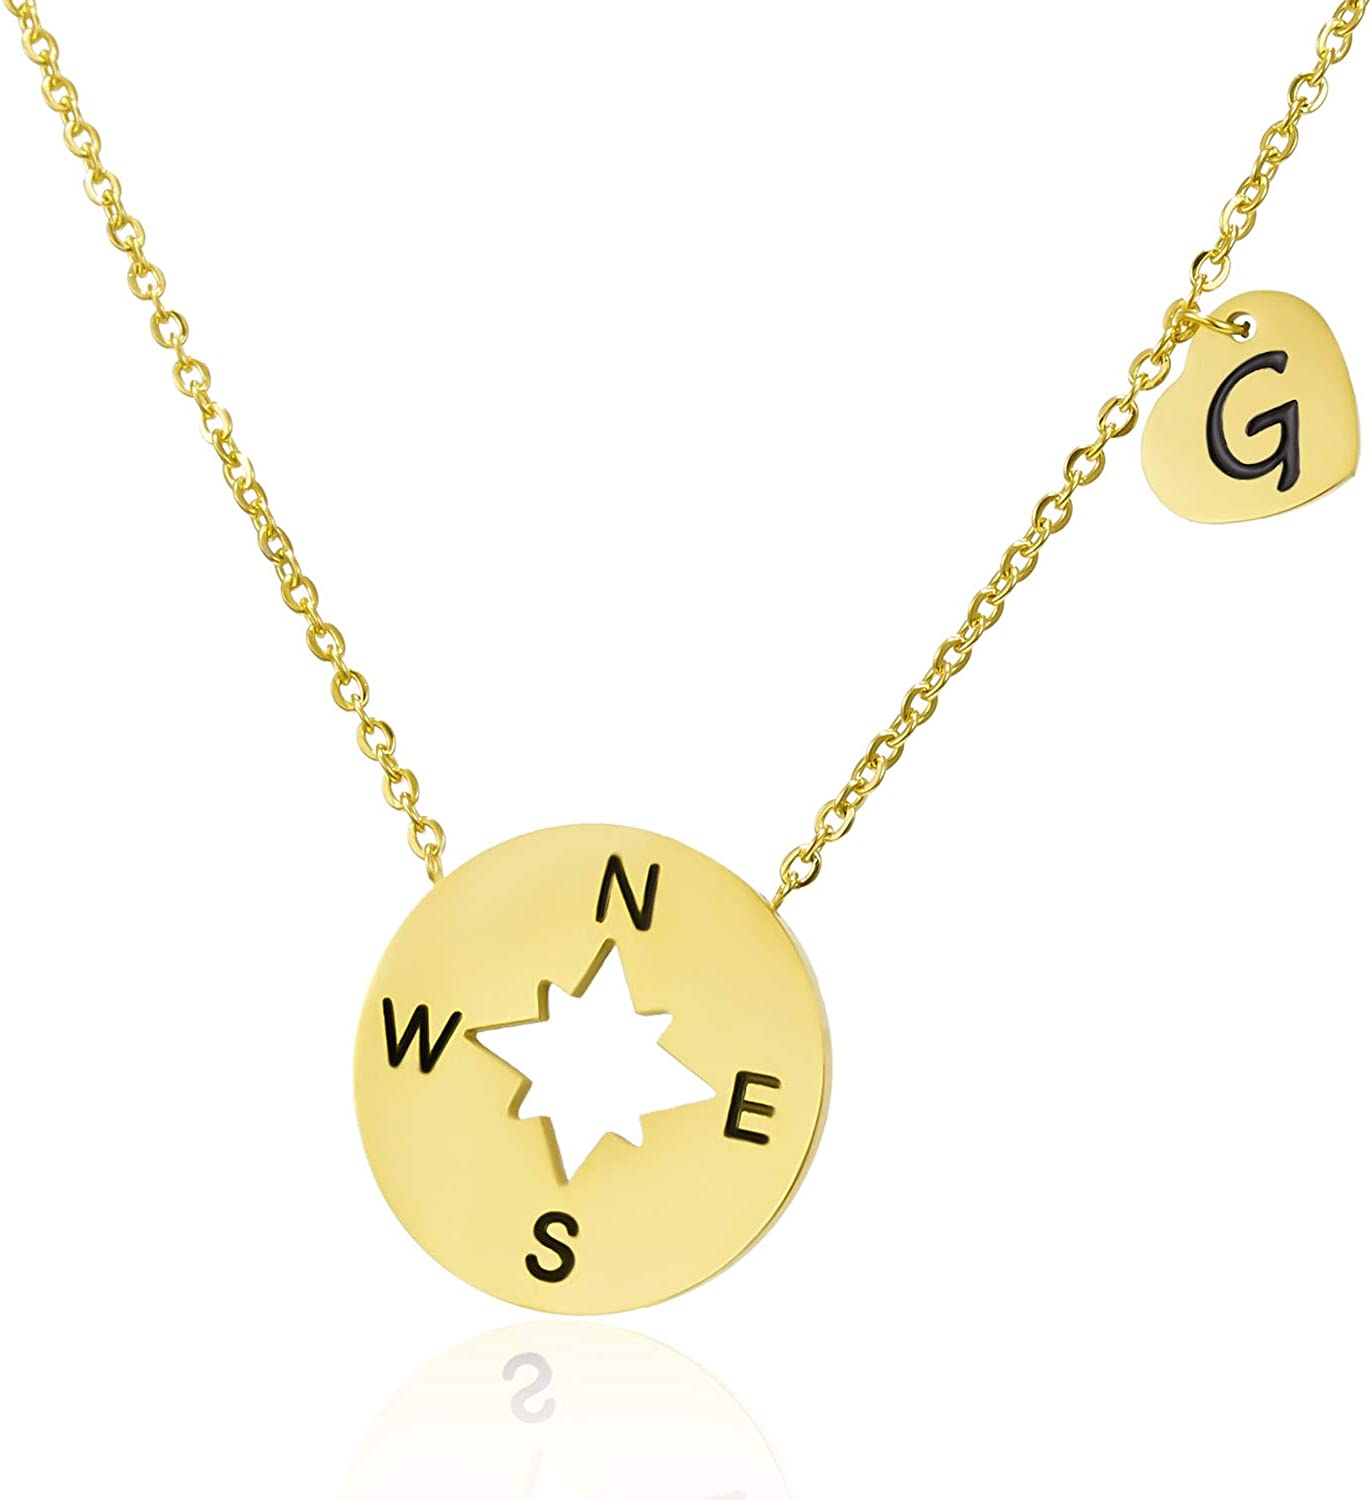 BELLA-Bee Friendship Compass Necklace Stainless Steel 18K Gold Plated Heart Pendant with Initial Letter A-Z Necklace For Women Teens Girl